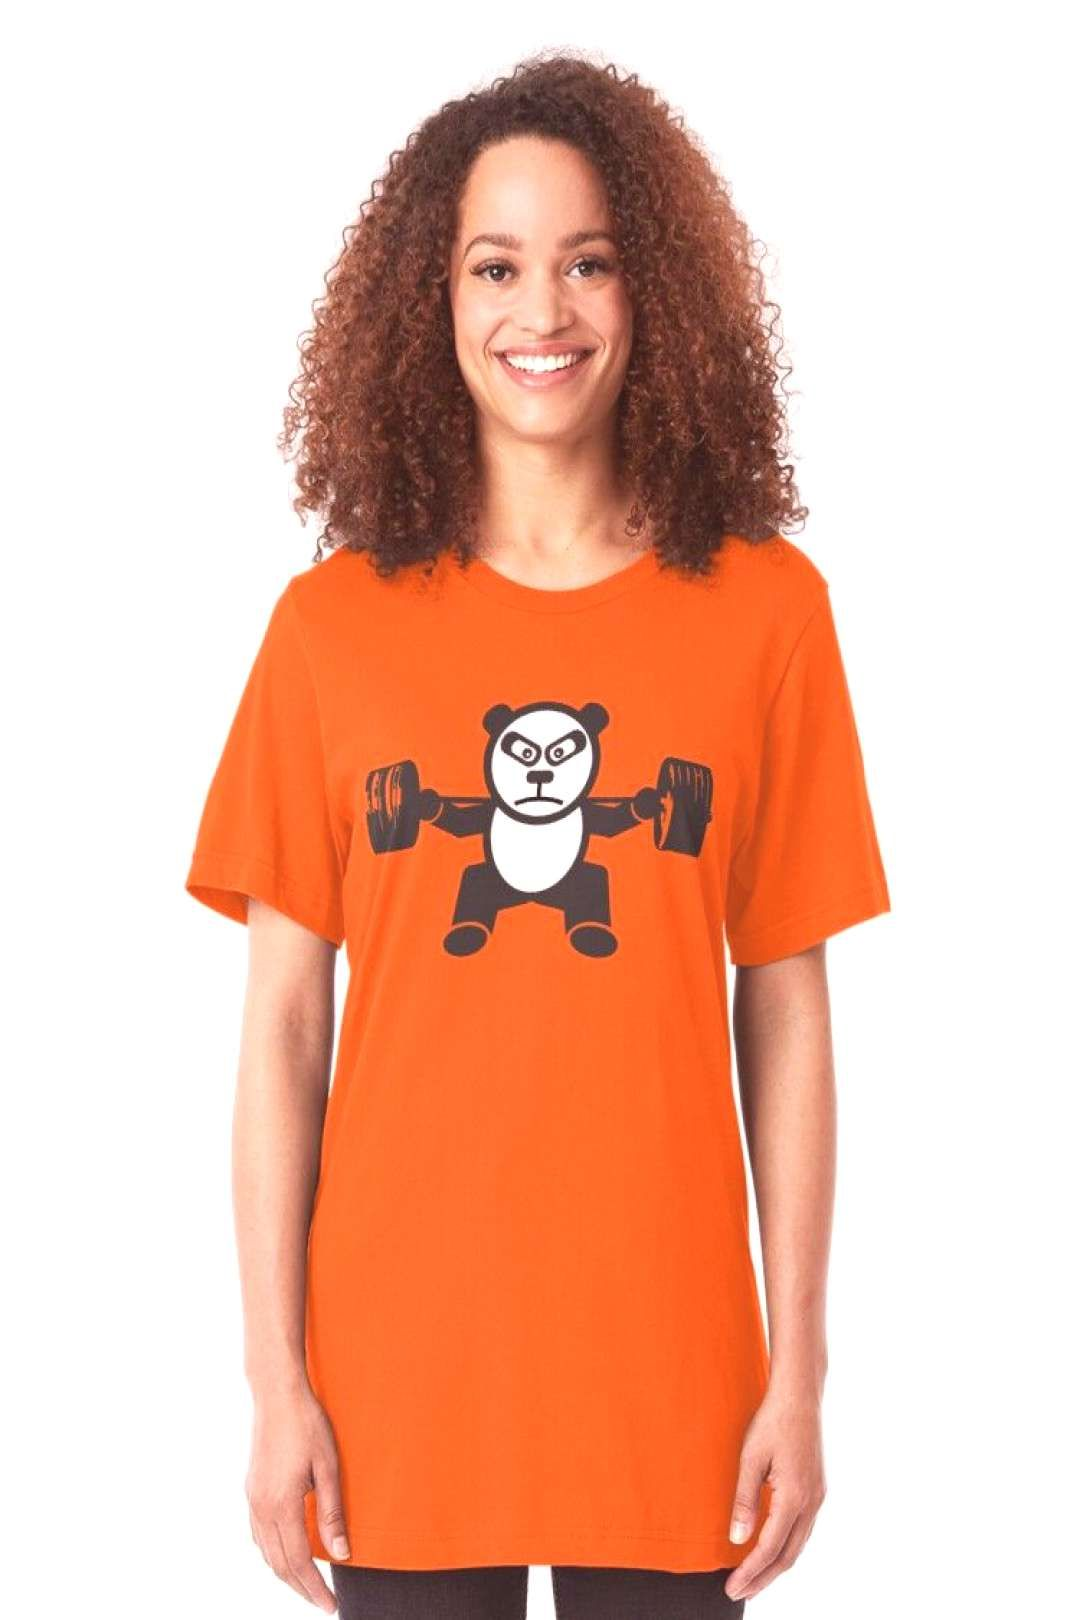 Cute Panda Bear Weightlifting  Squat  Leg Day Tshirt by mchanfitness Redb You can find We